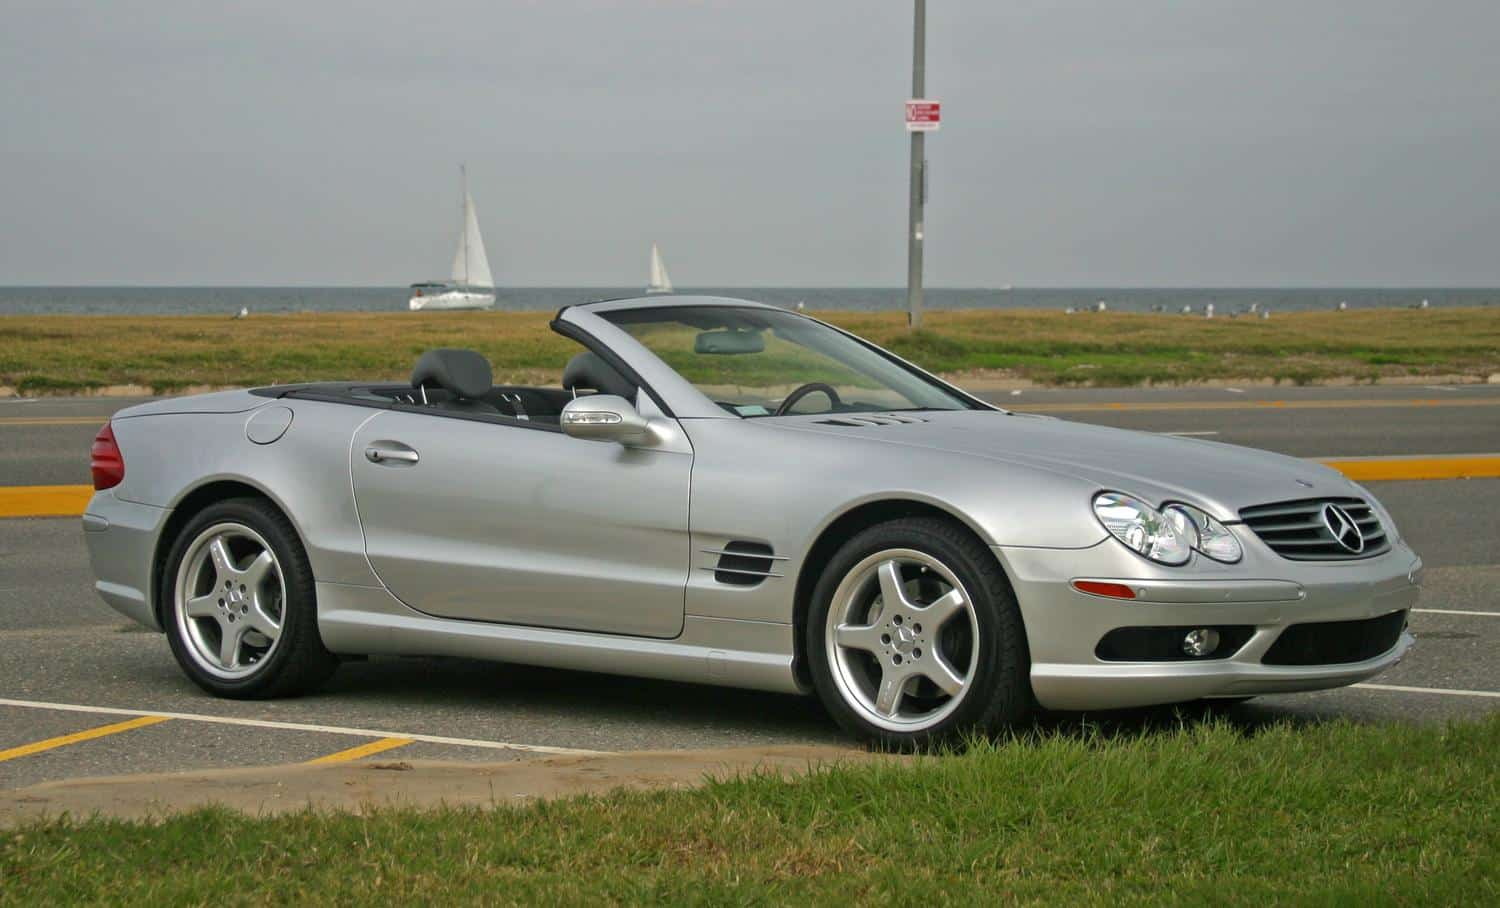 Mercedes-Benz SL R230 - 10 cool cars for under £10,000 (The Car Expert)